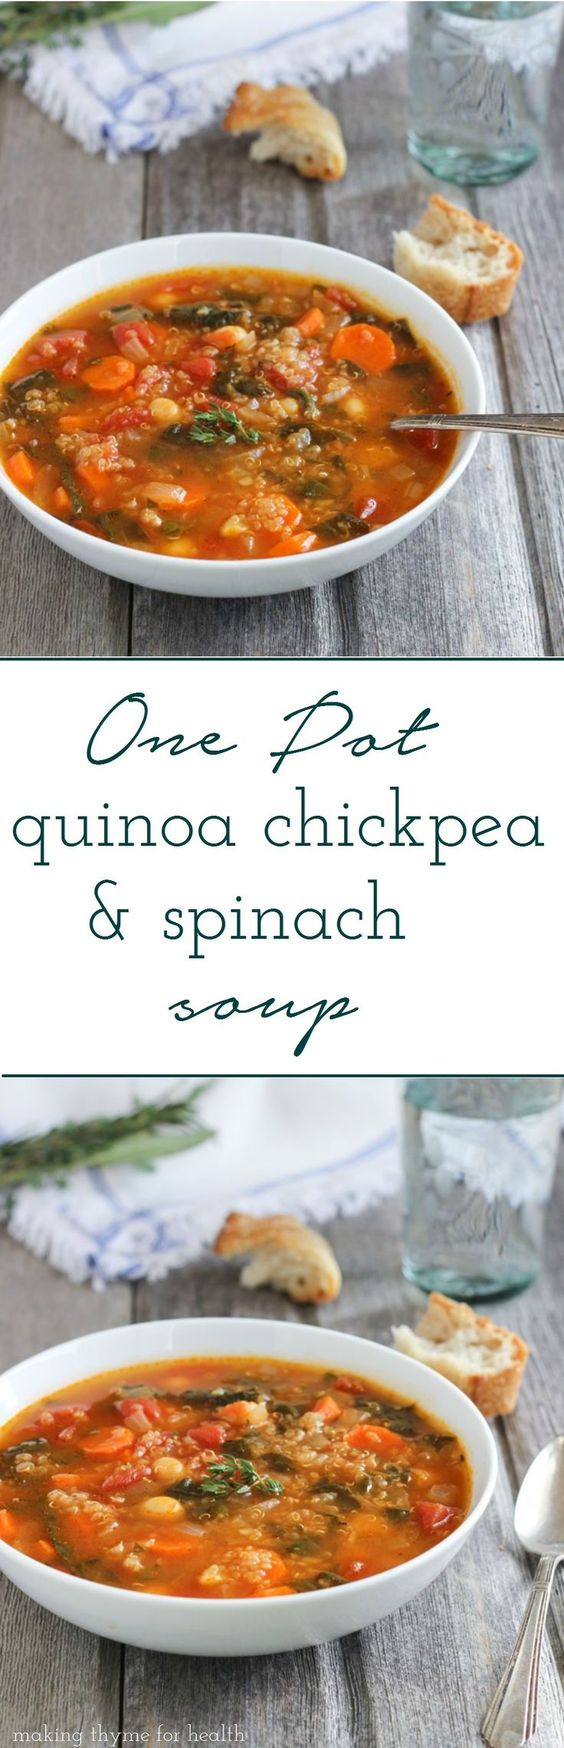 Quinoa Chickpea and Spinach Soup- a comforting one pot meal full of ...